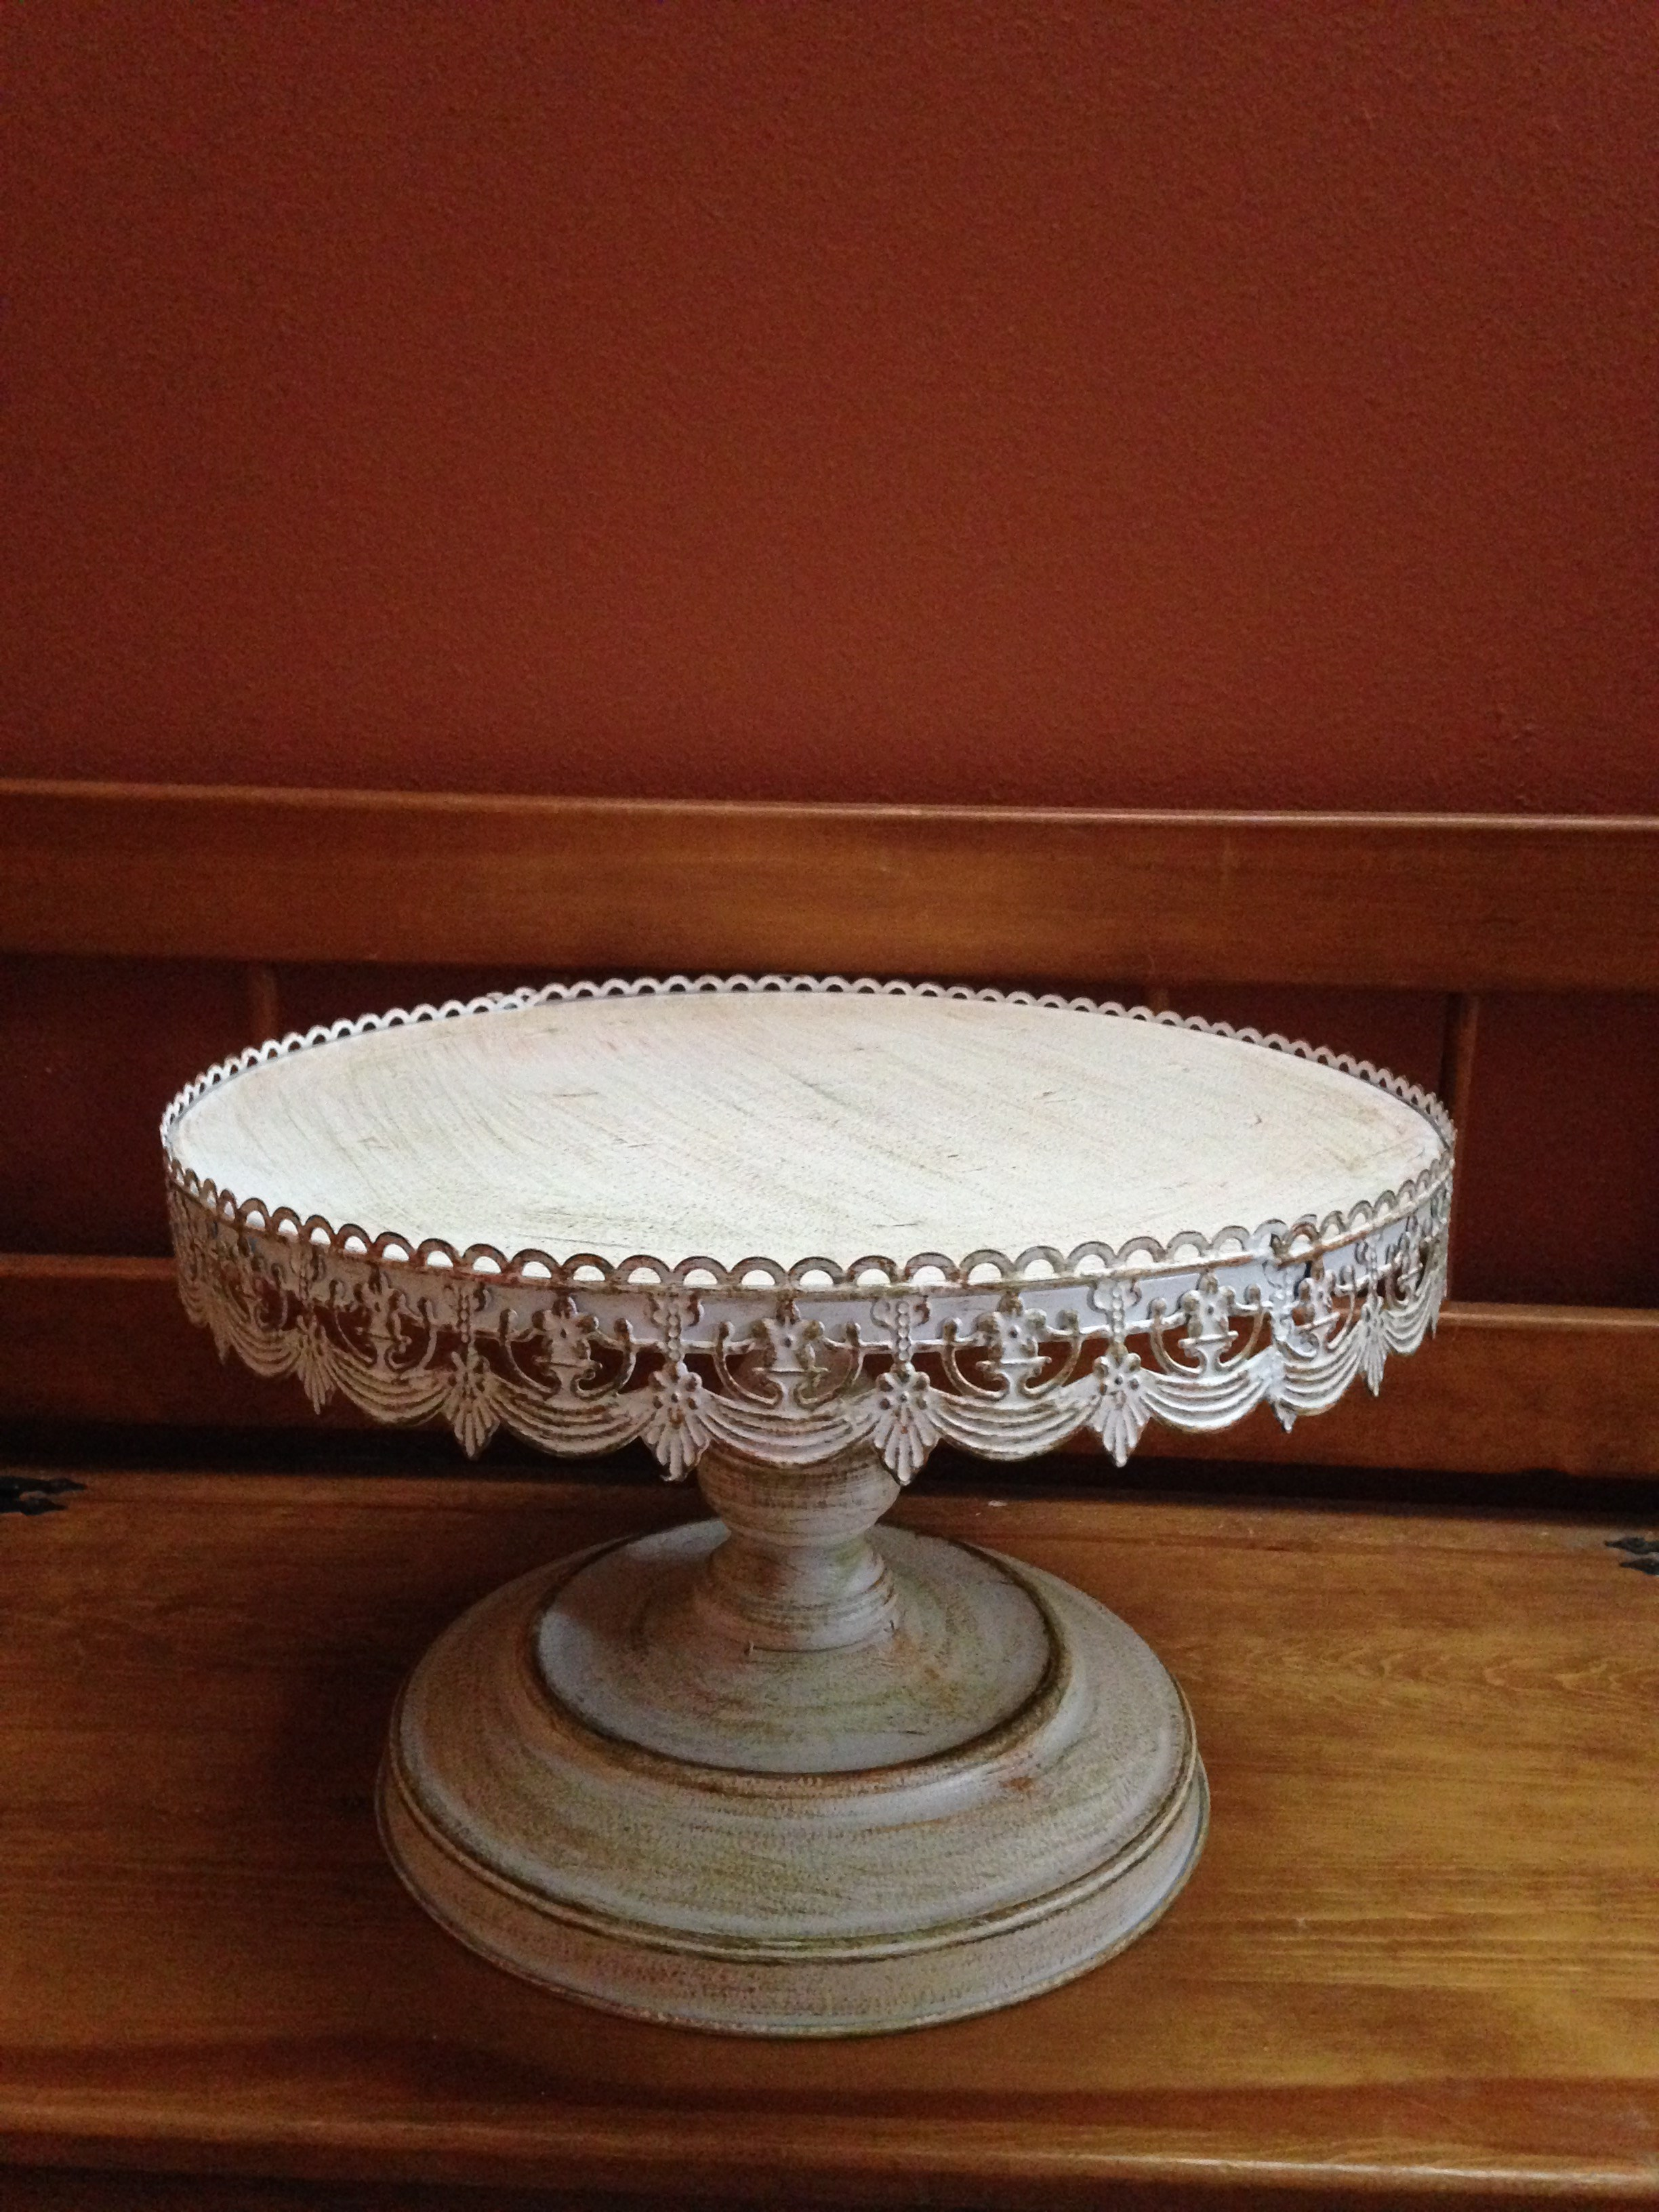 Large Vintage Metal Cake Stand - This stand measures 9.75  tall (9.5  to the cake plate) x 16.25  across; cake surface is 16  in diameter. & stand-large.jpg?widthu003d375u0026heightu003d500